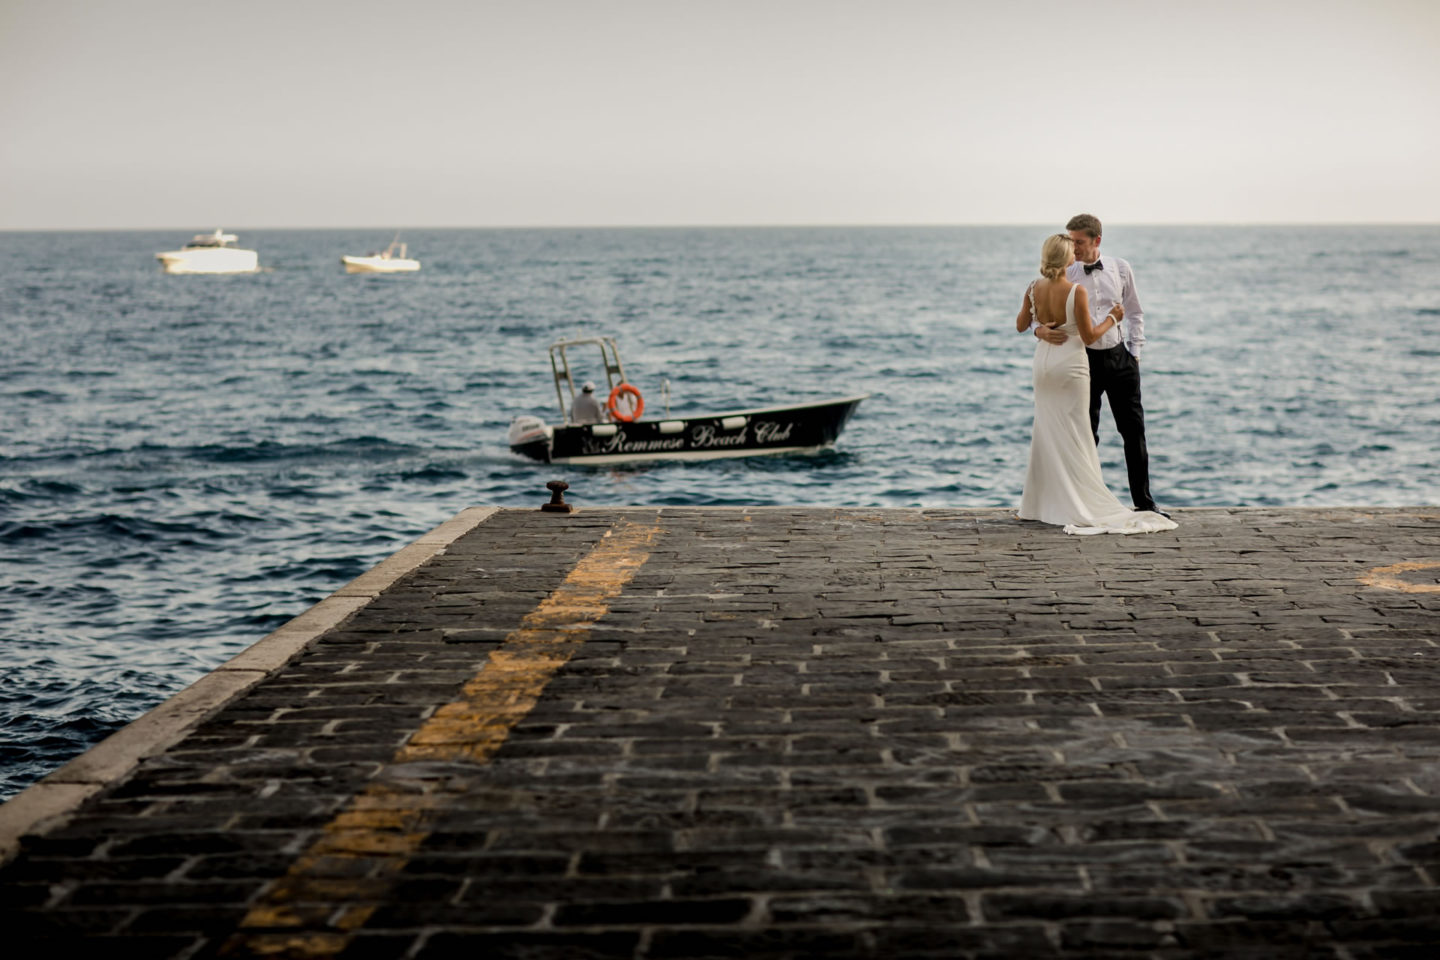 Boat :: Wedding in Positano. Sea and love :: Wedding photographer based in Florence Tuscany Italy :: photo-41 :: Boat